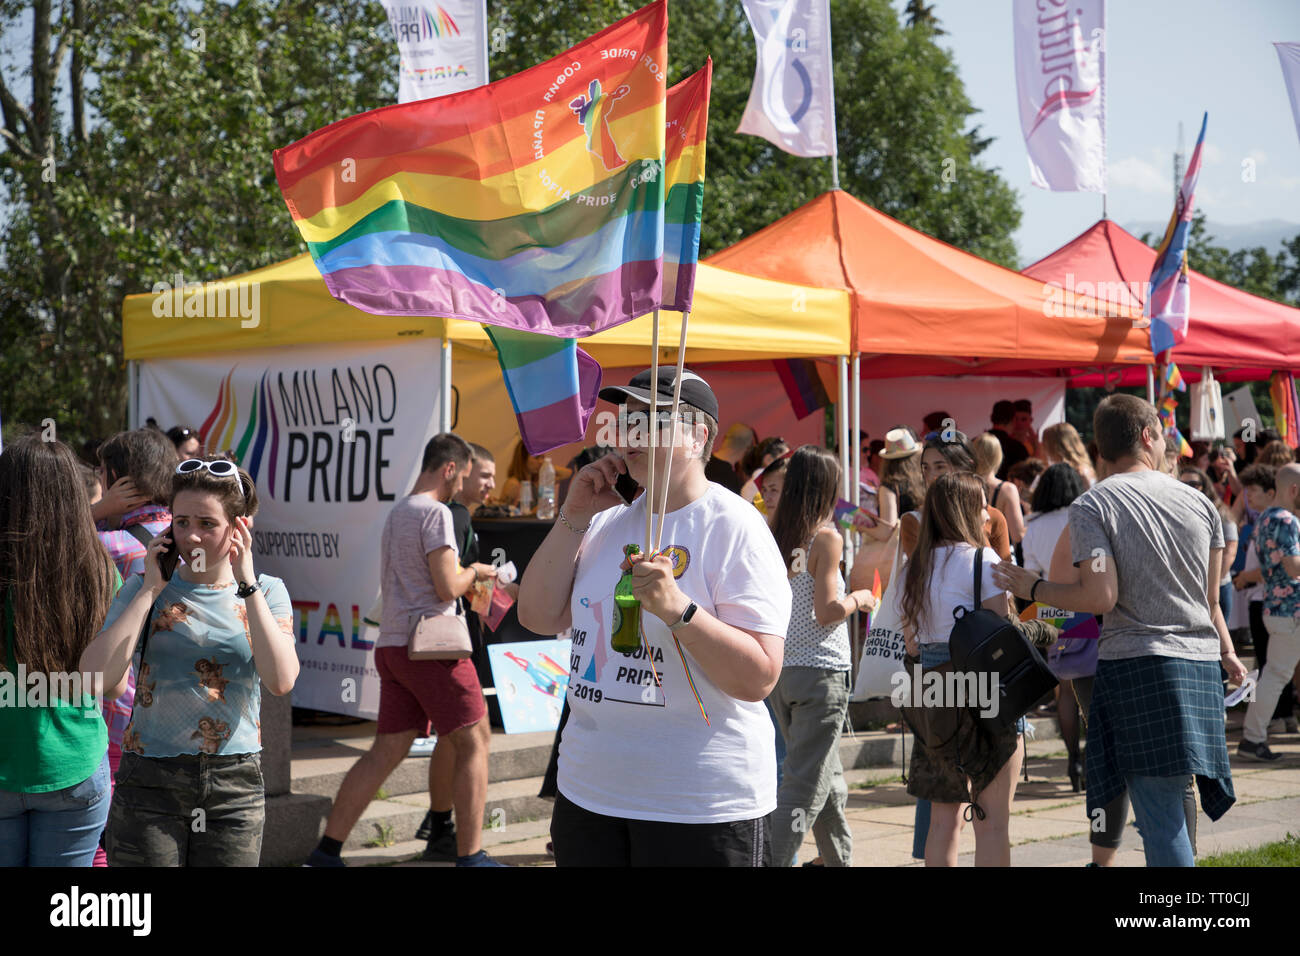 Sofia, Bulgaria - June 08, 2019: Sofia Pride is the biggest annual event dedicated to the equality and human rights of all citizens and the biggest - Stock Image